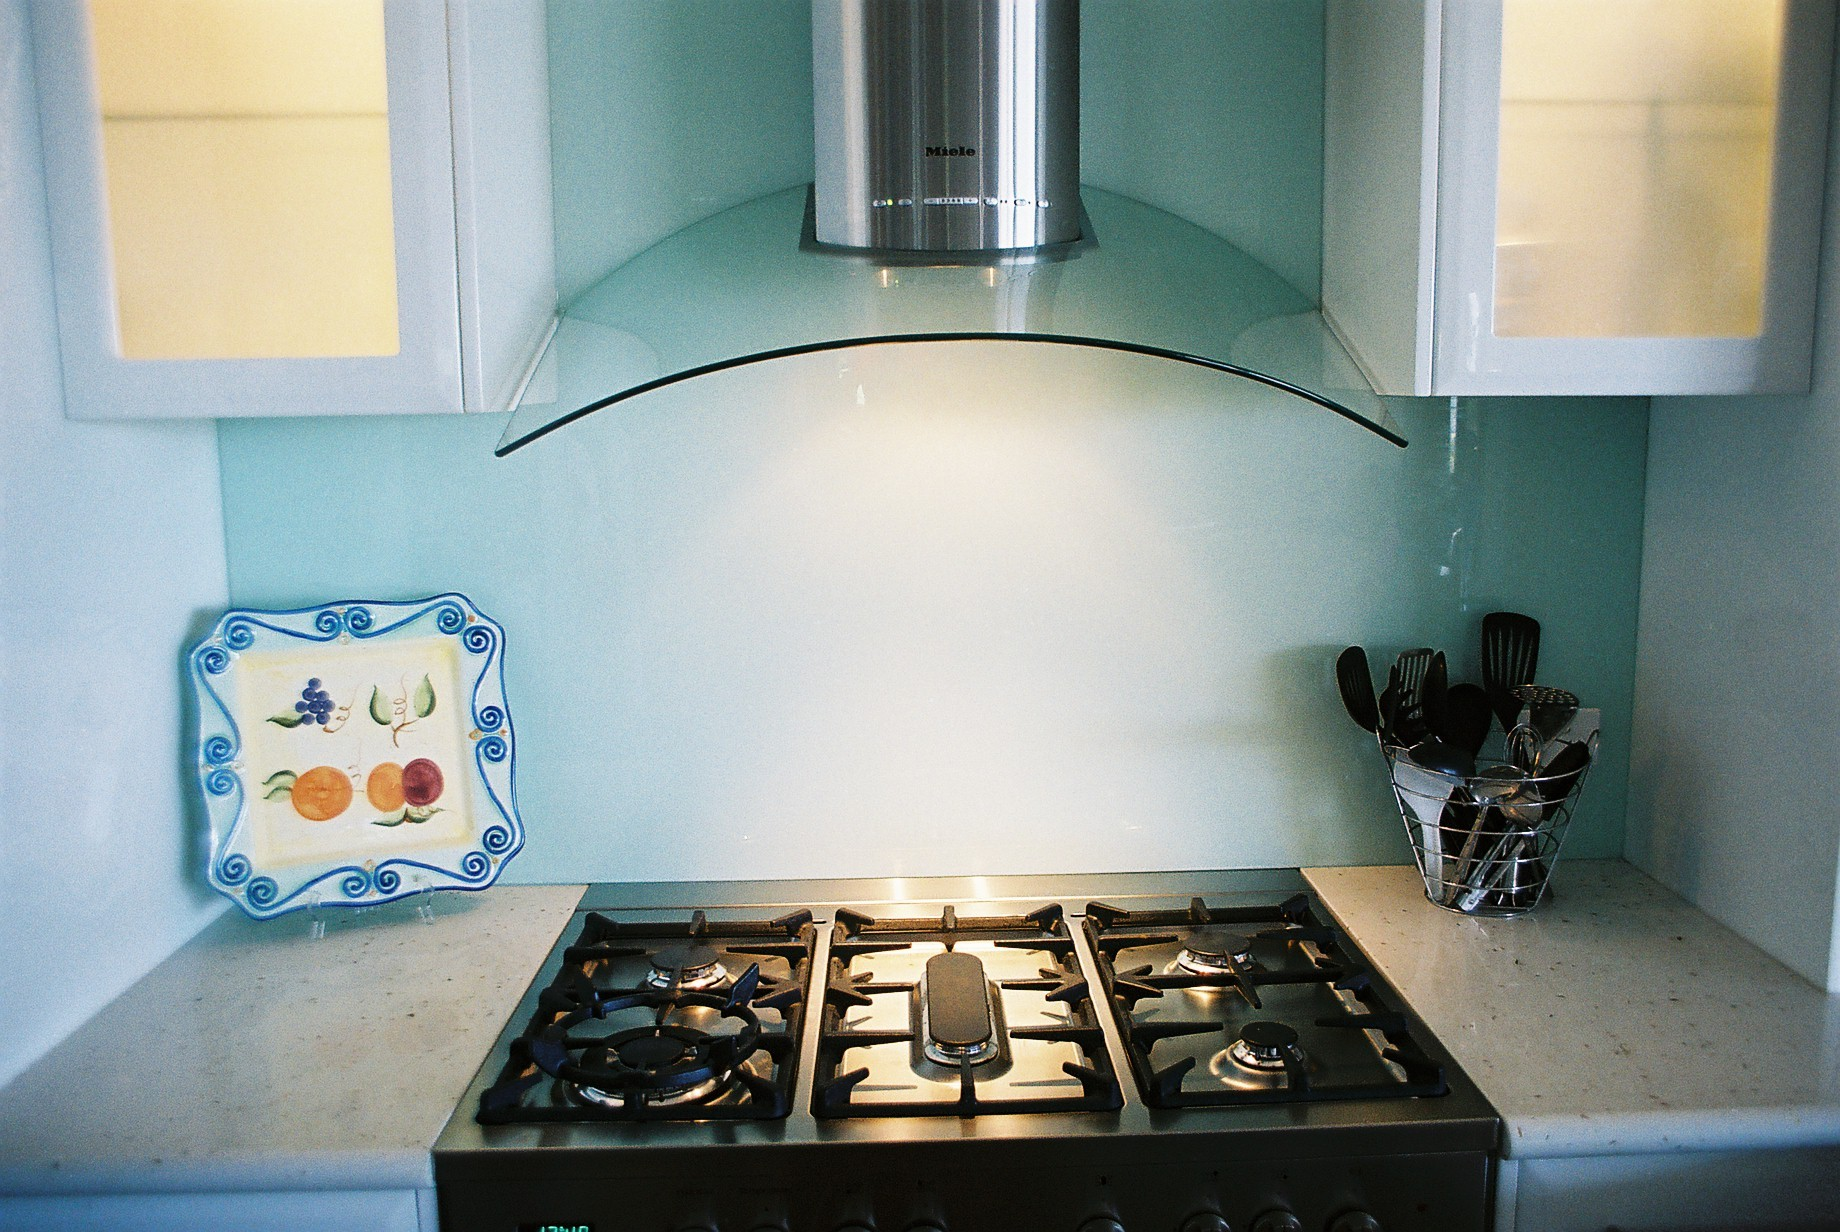 Great Ways to Use a Glass Backsplash to Update Your Kitchen